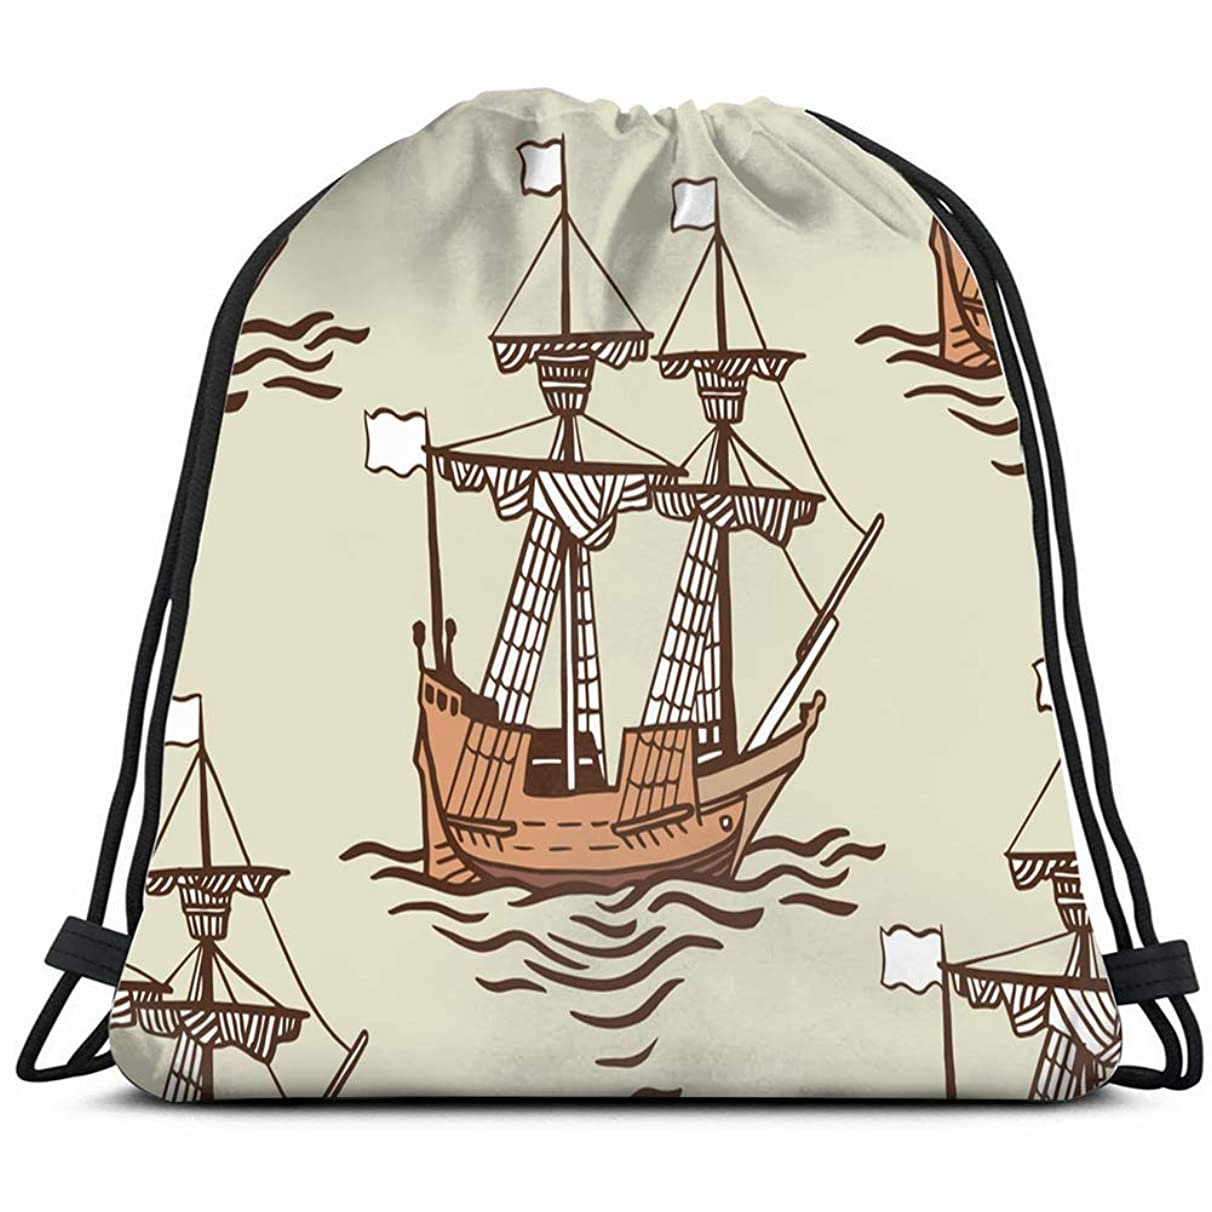 hand drawn old ship sailboat adventure transportation Drawstring Backpack Gym Sack Lightweight Bag Water Resistant Gym Backpack for Women&Men for Sports,Travelling,Hiking,Camping,Shopping Yoga